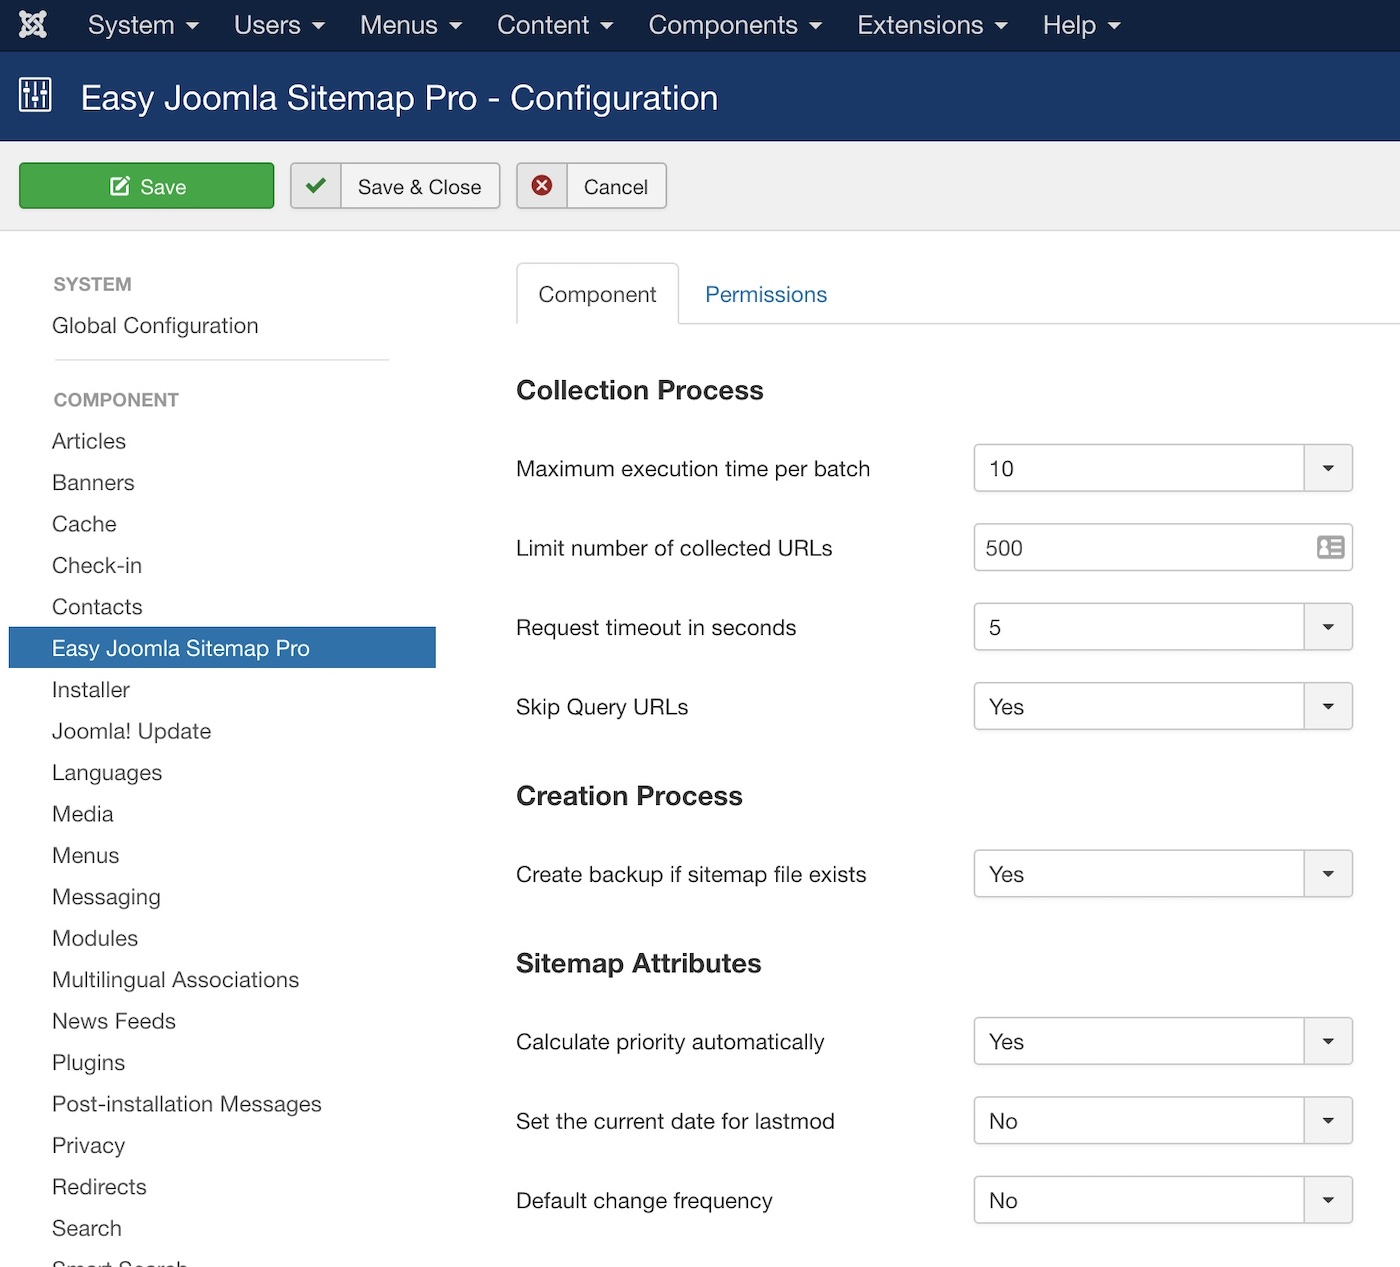 Easy Joomla Sitemap - Settings